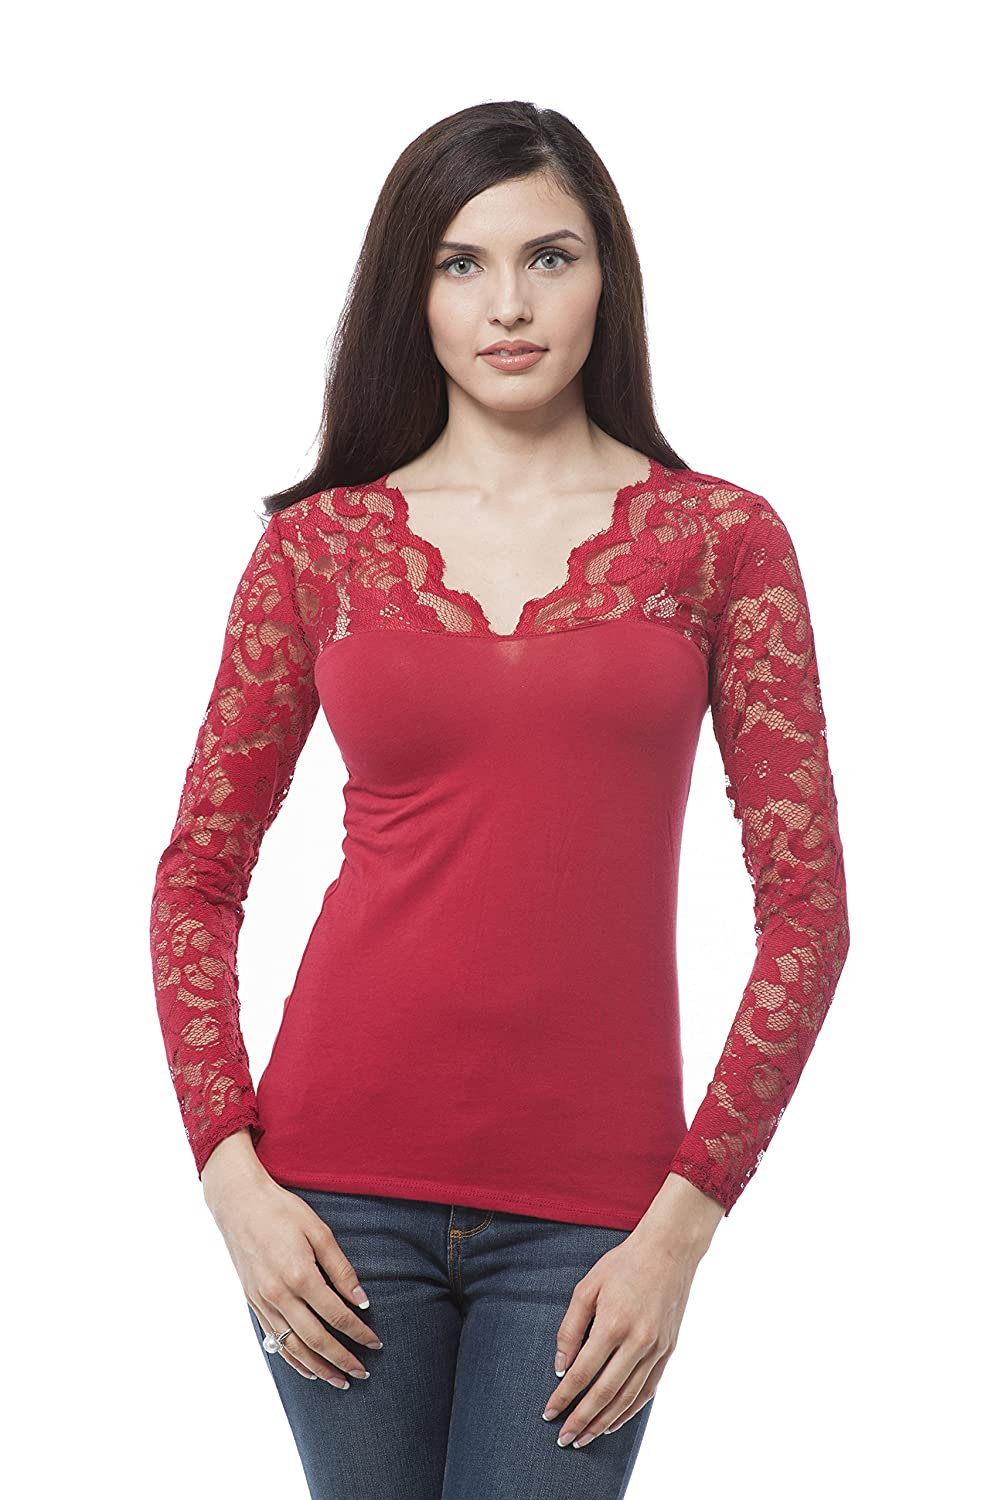 Hollywood Star Fashion Plus Size V Neck Long sleeve top with lace insert on sleeves Deep Red ) Khanomak 65641XL_Deep Red _1XL